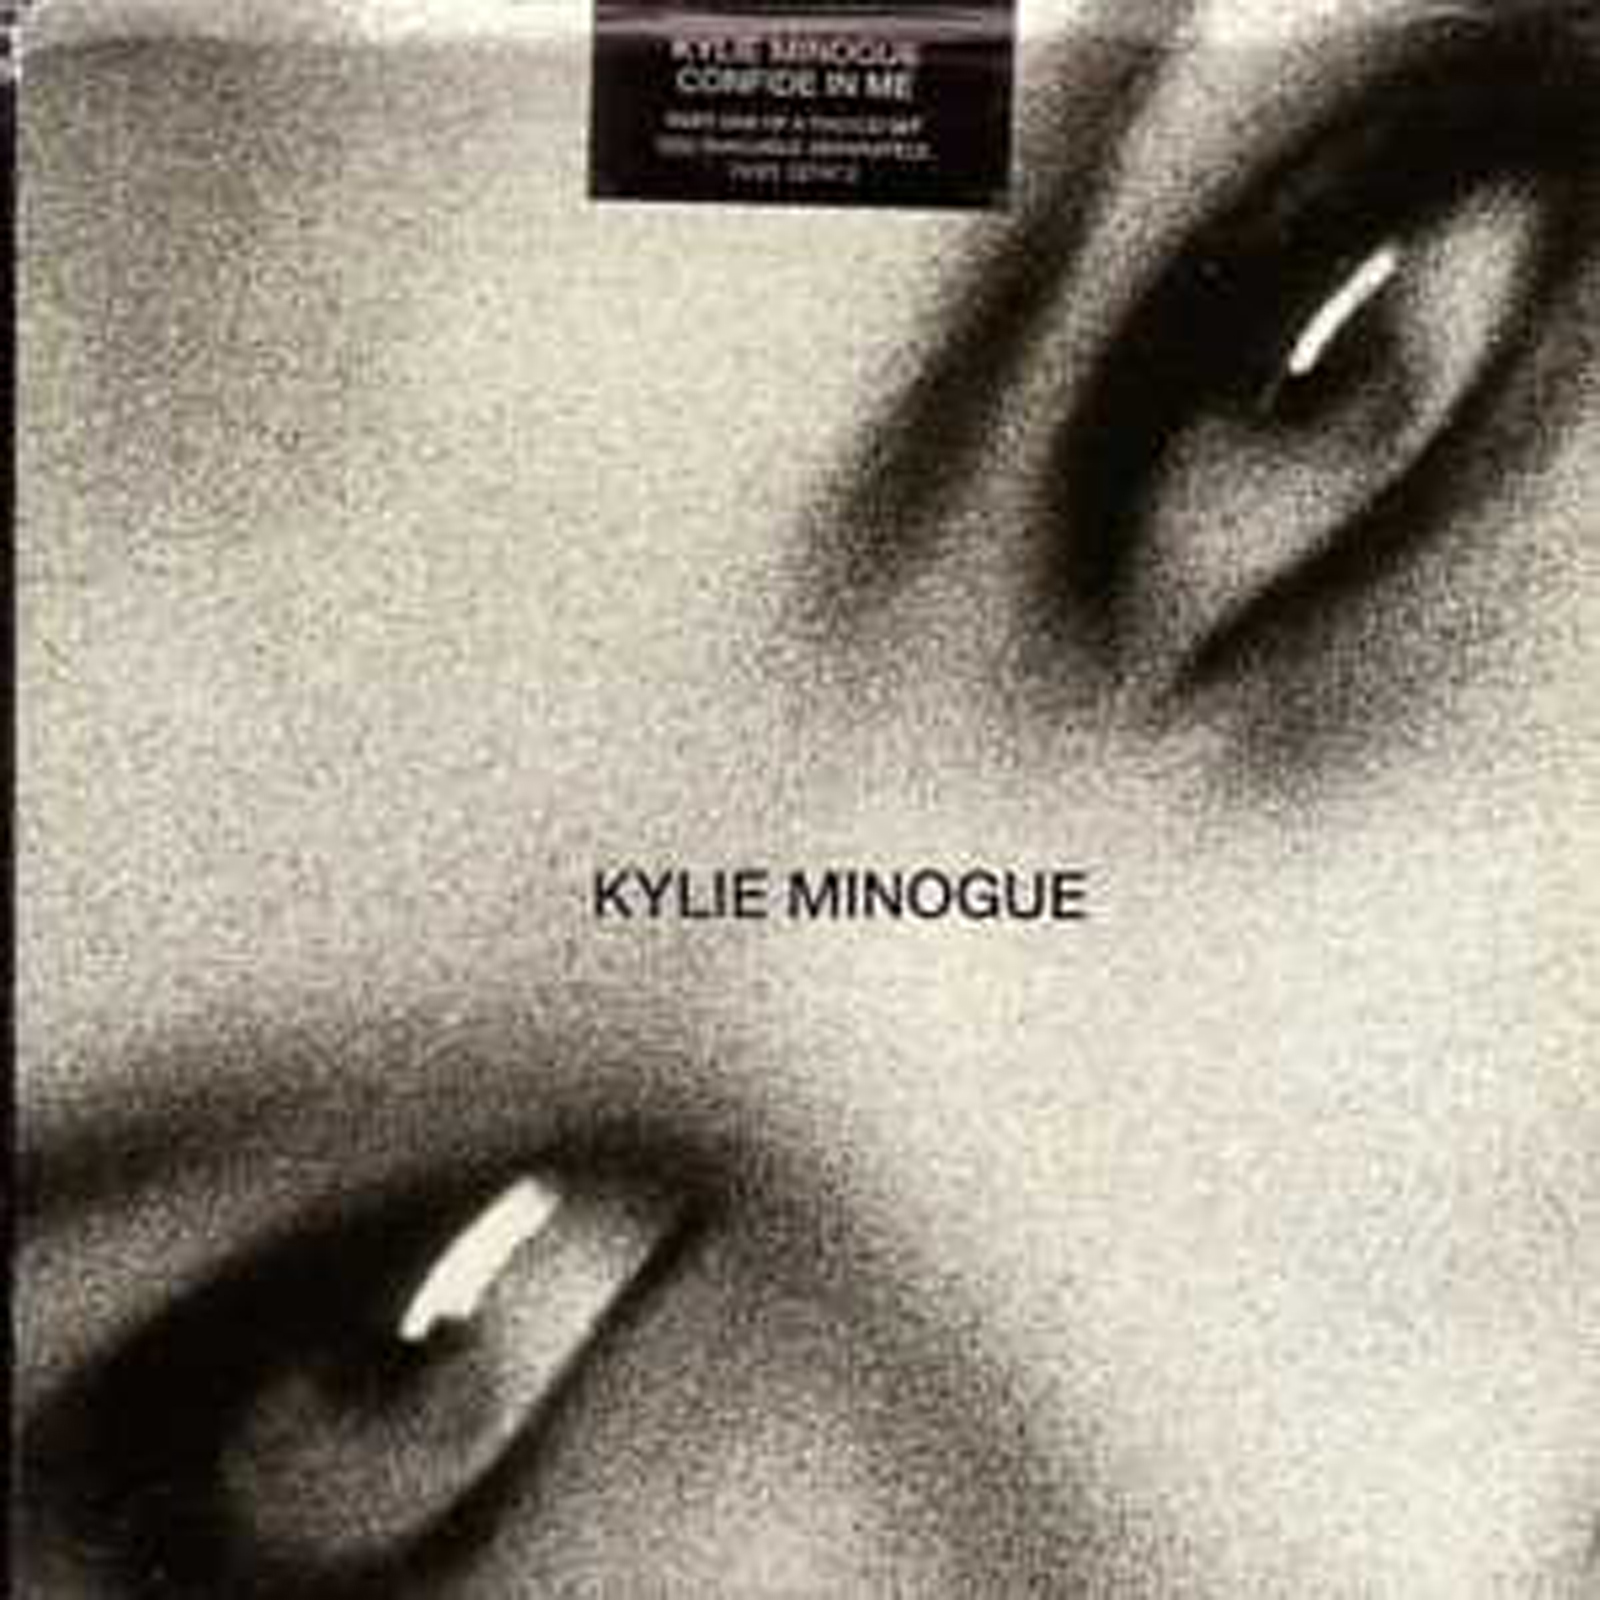 MINOGUE, KYLIE - Confide In Me Radio Mix/master Mix/big Brother Mix/the Truth Mix